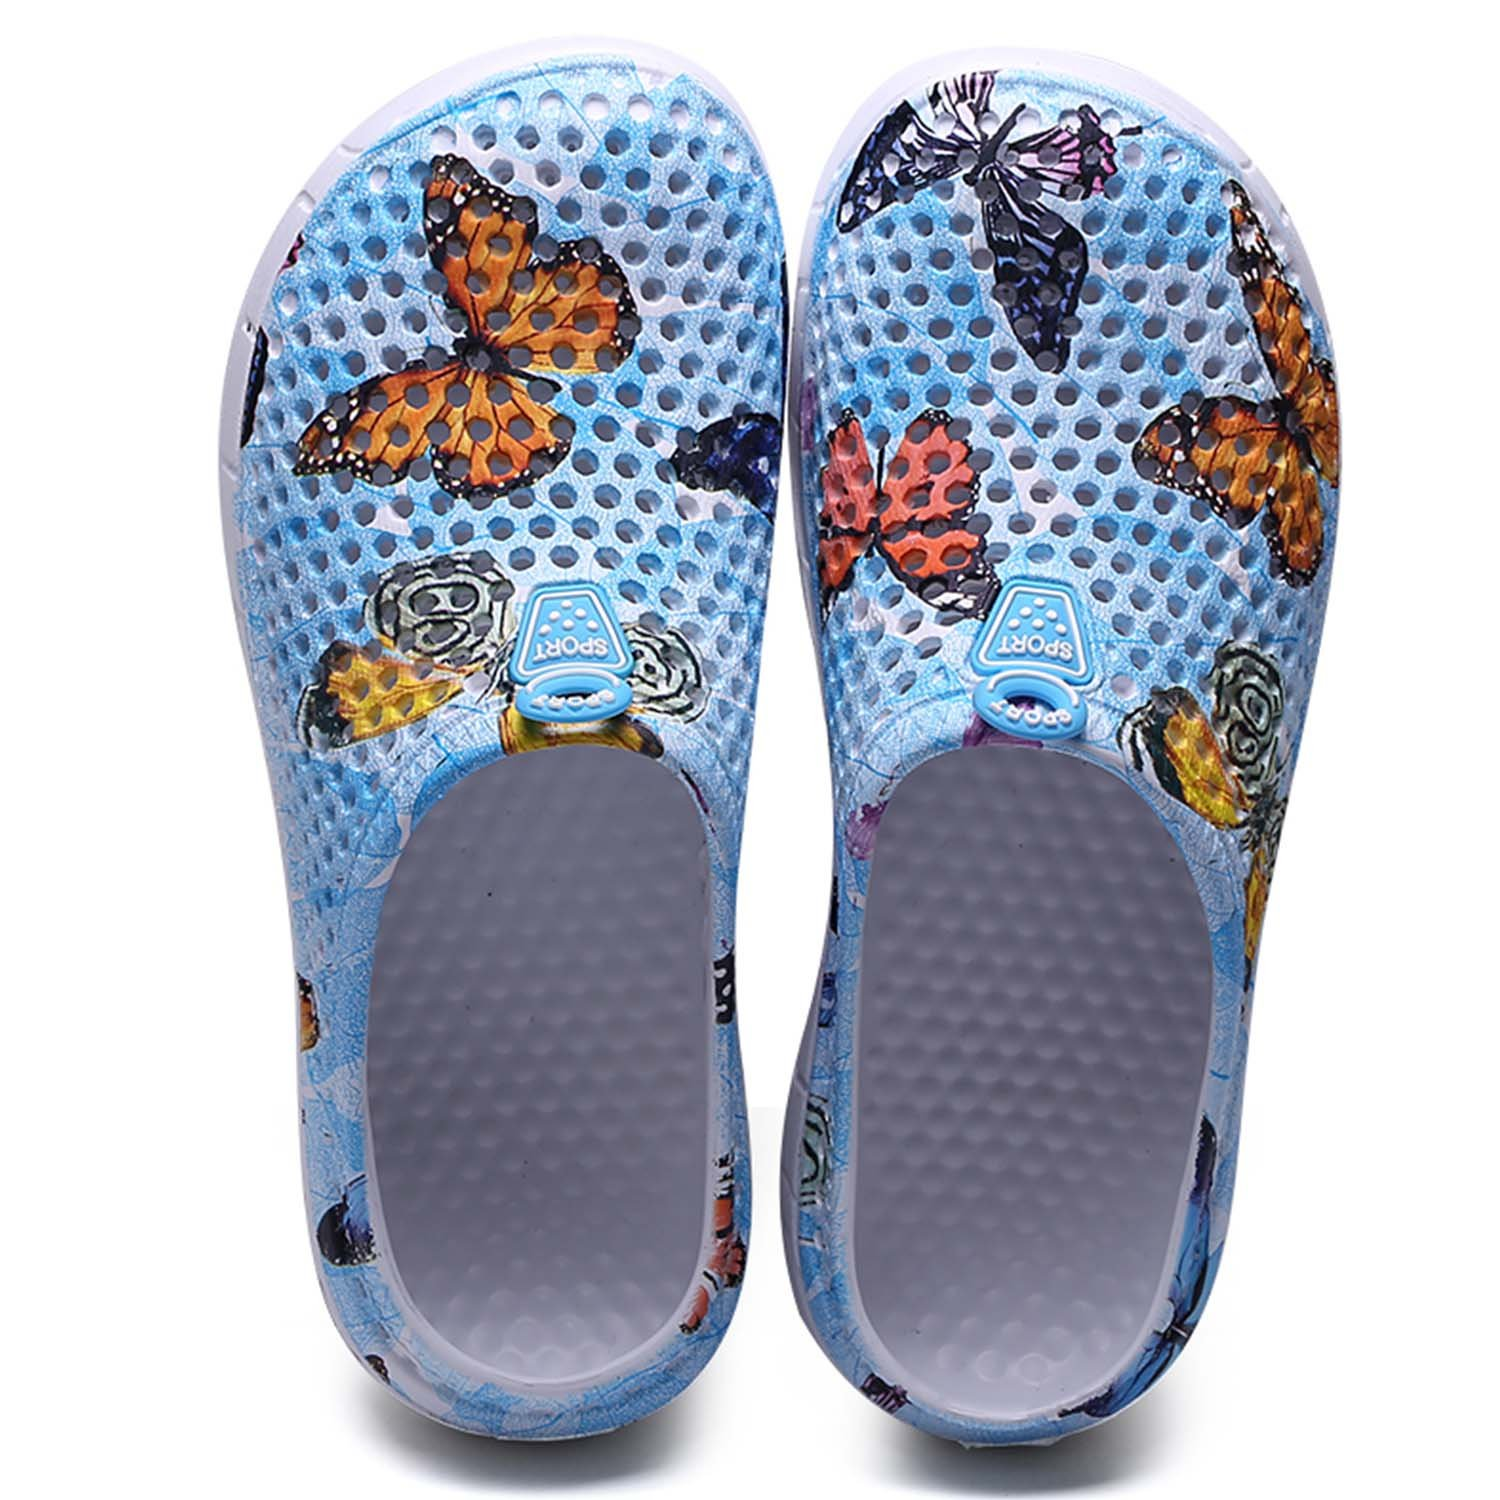 HMAIBO Garden Clogs Shoes Women's Men's Breathable Mule Sandals Water Slippers Footwear